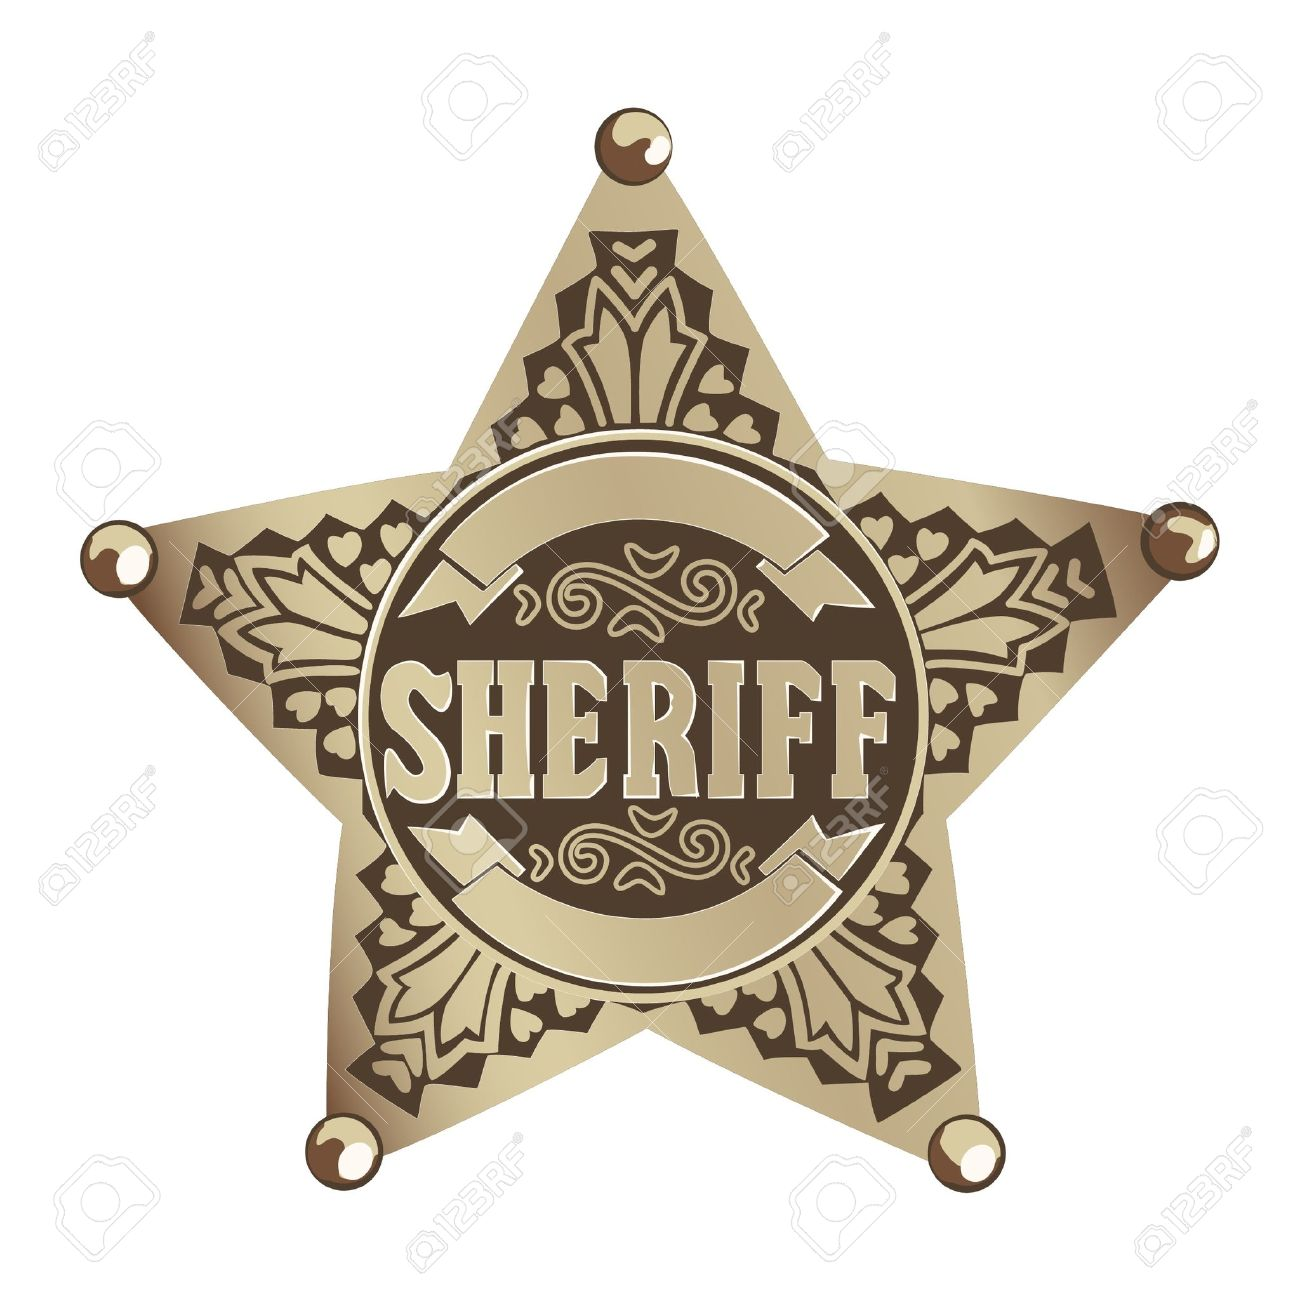 Sheriff Star Royalty Free Cliparts, Vectors, And Stock Illustration ...